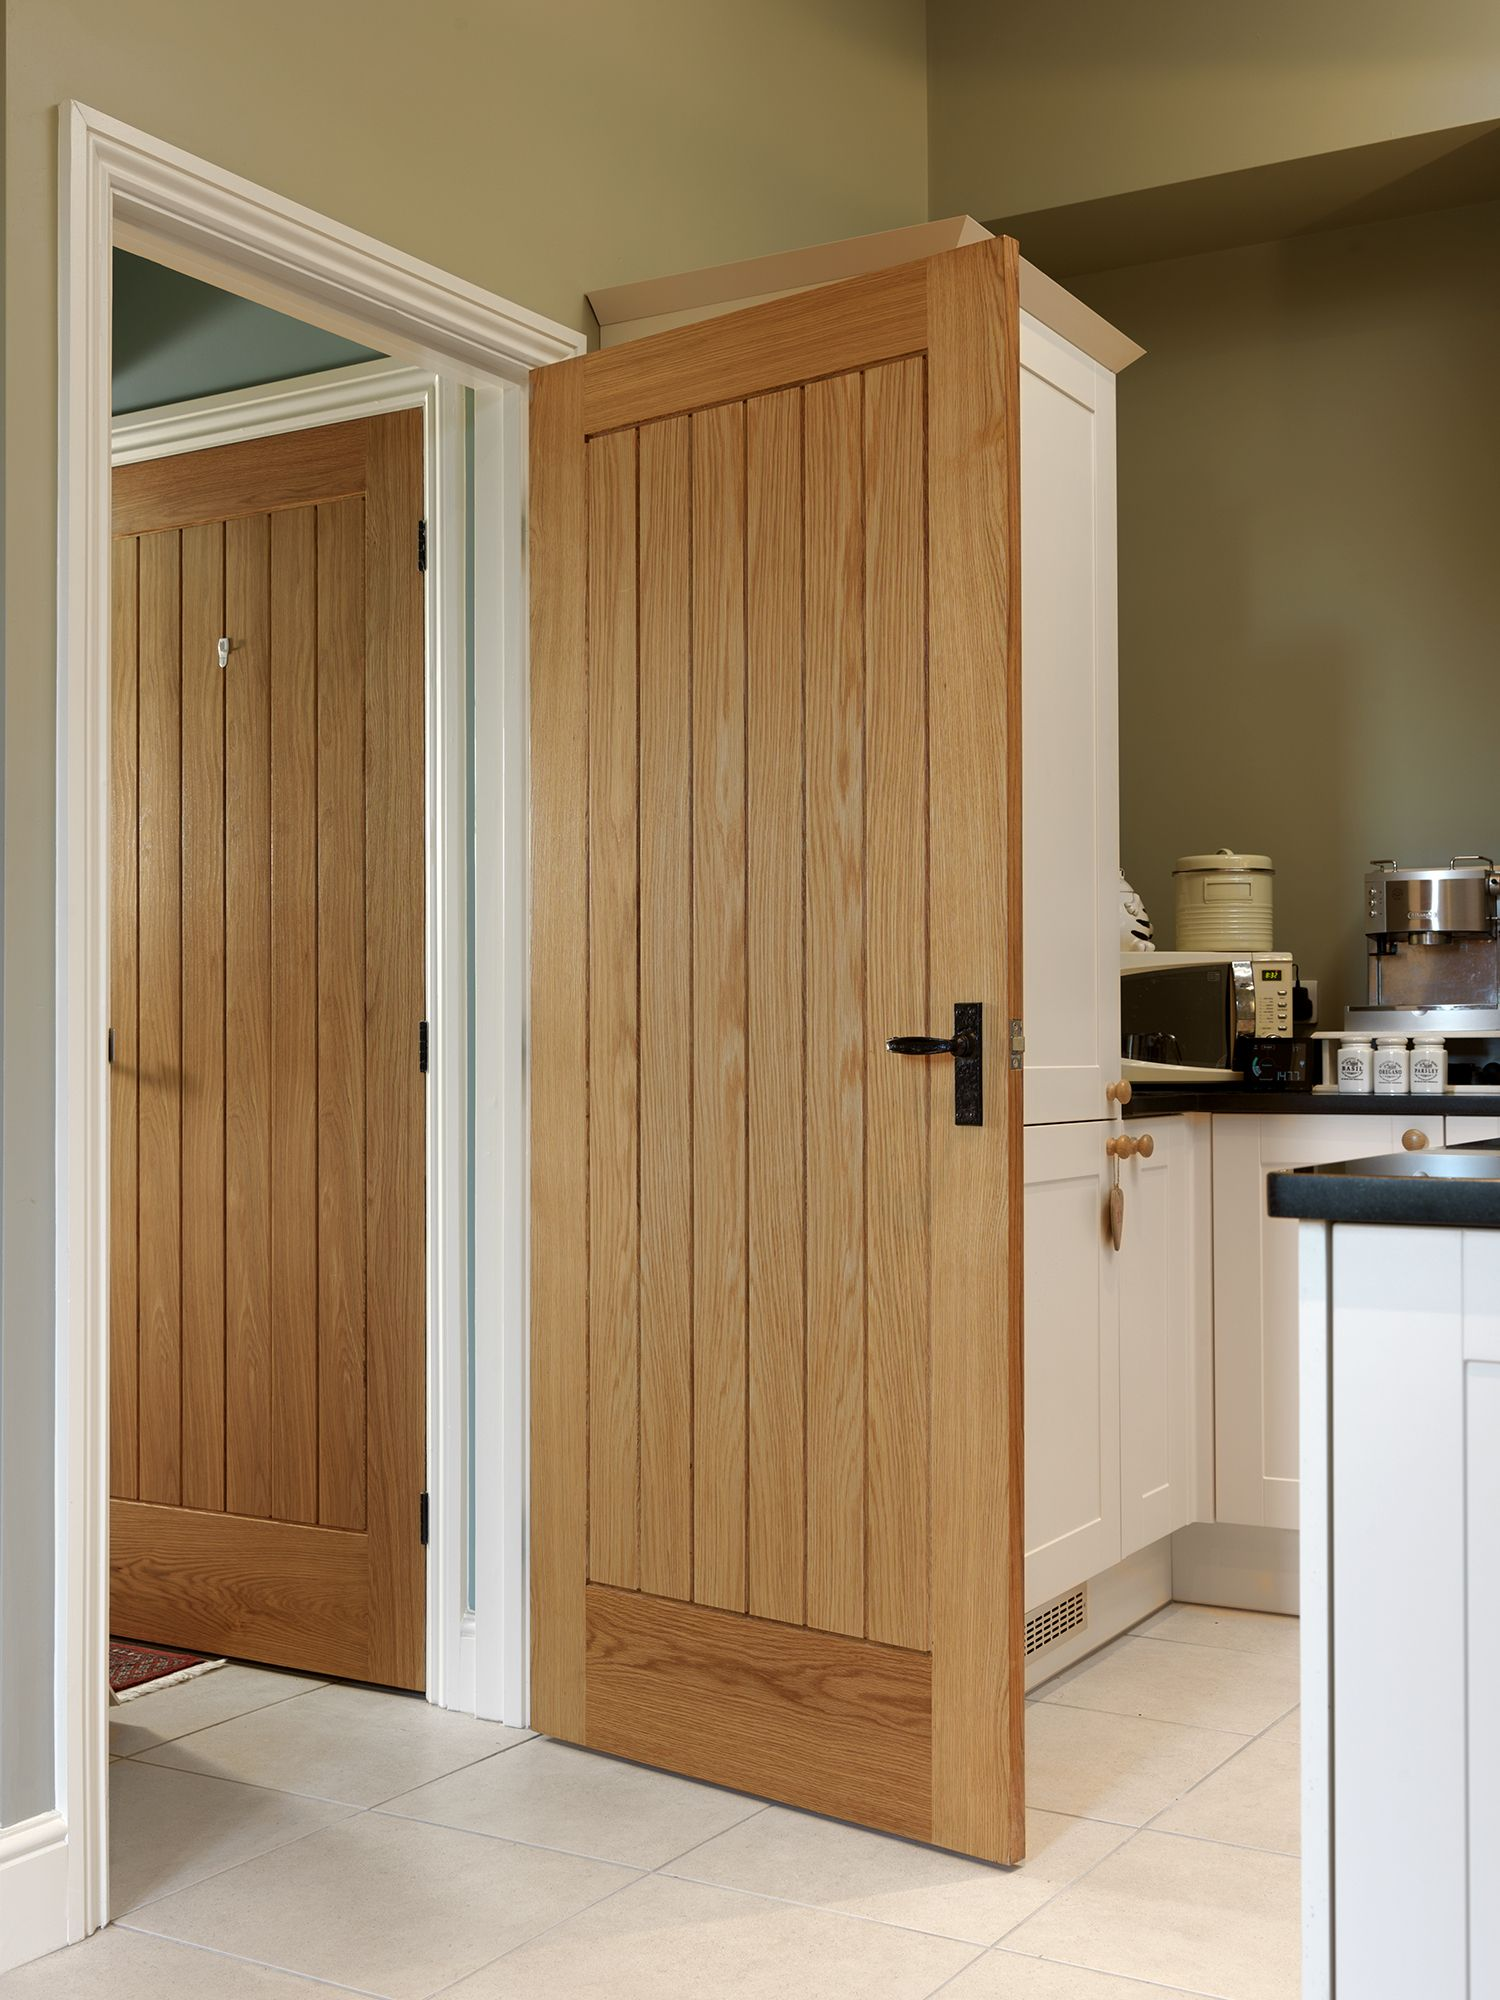 Wooden Internal Doors With: Cottage Style Boarded Oak Internal Doors Are Popular For